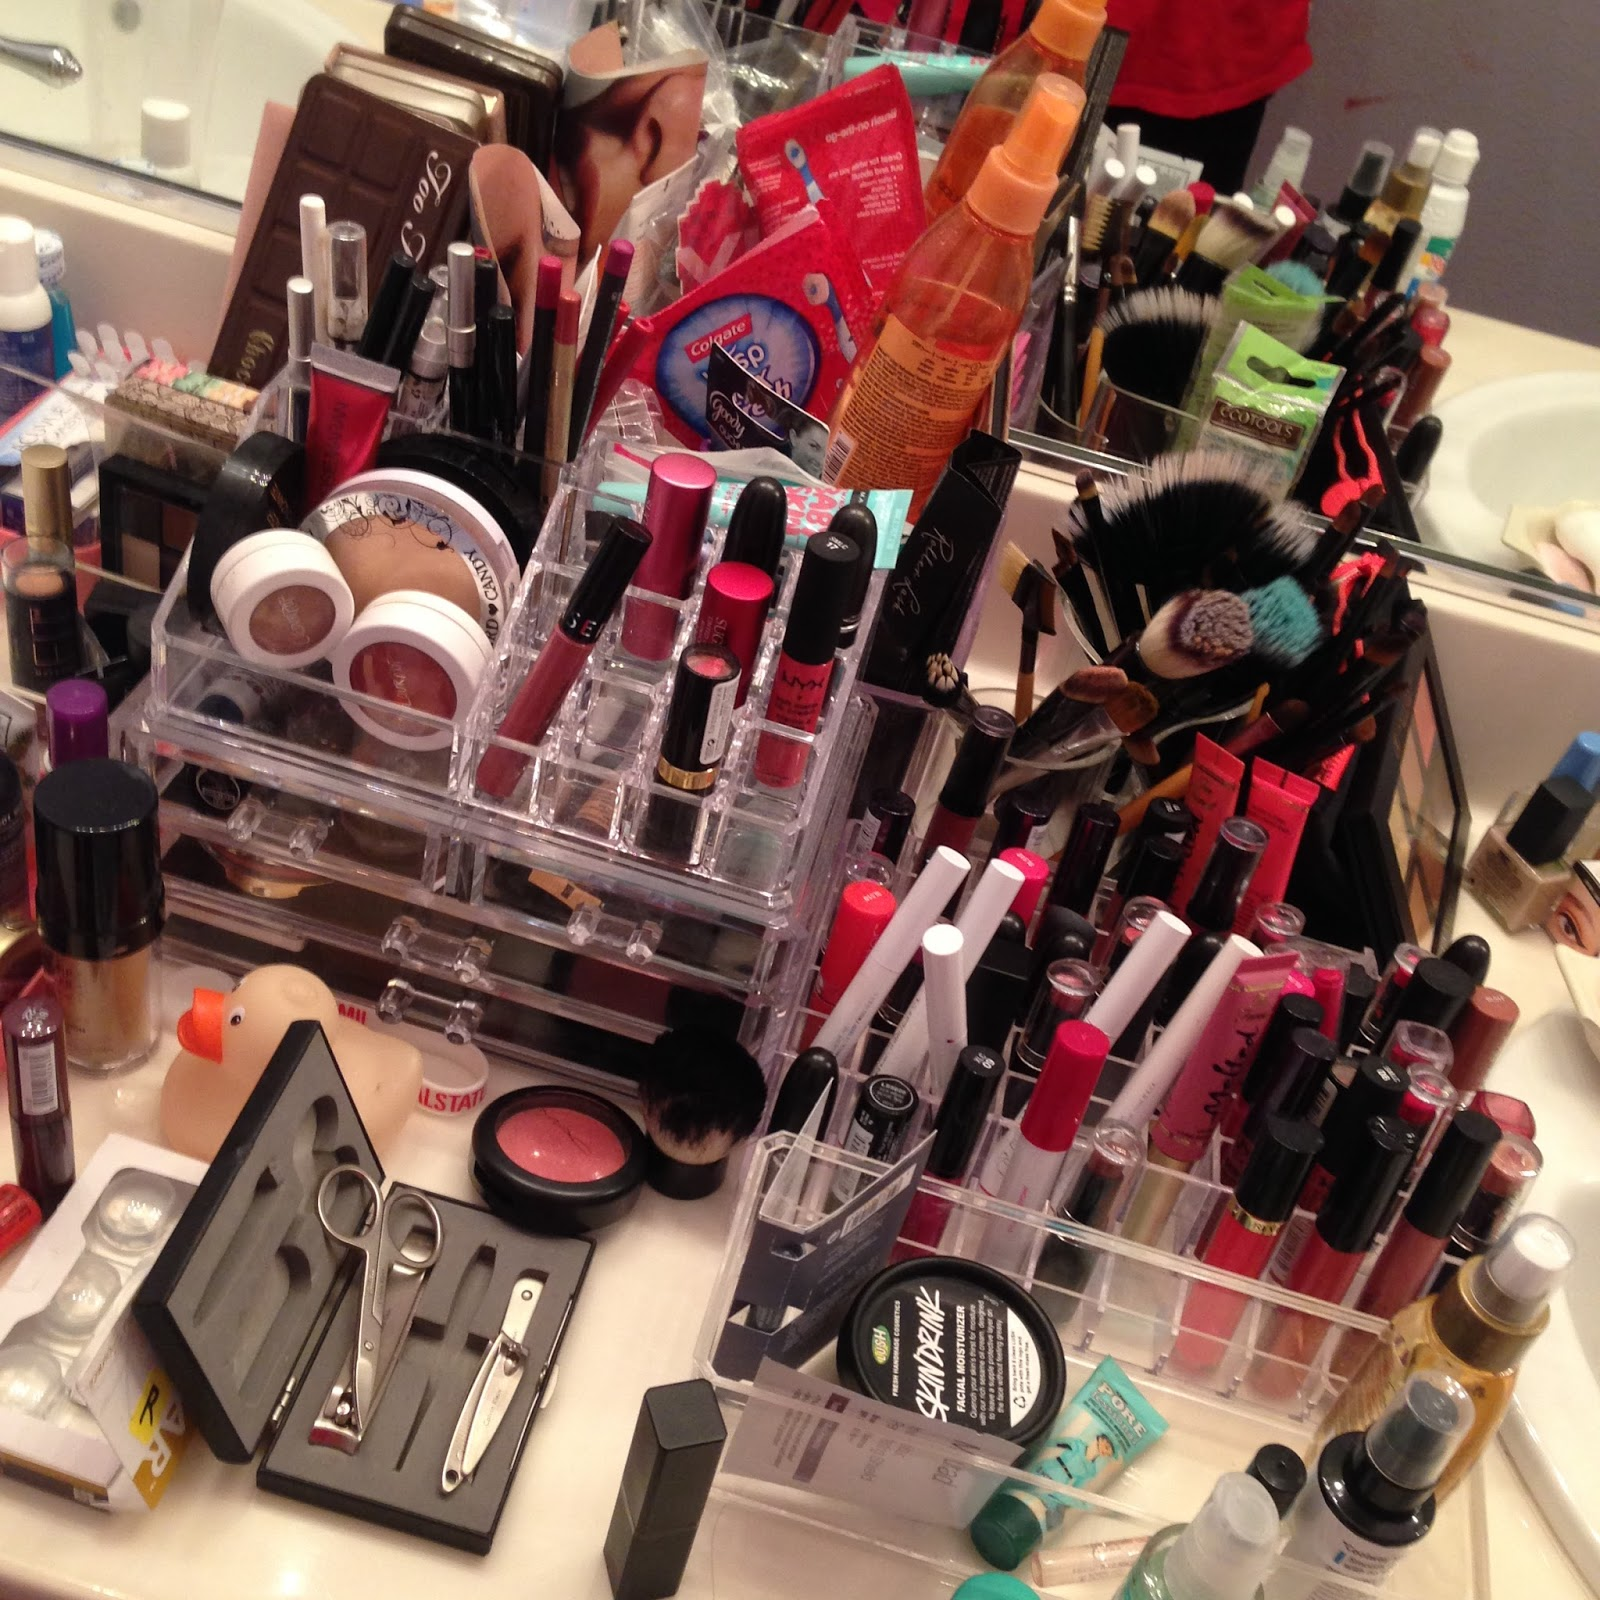 Messy Bathroom: How I Re-organized My Makeup Collection.